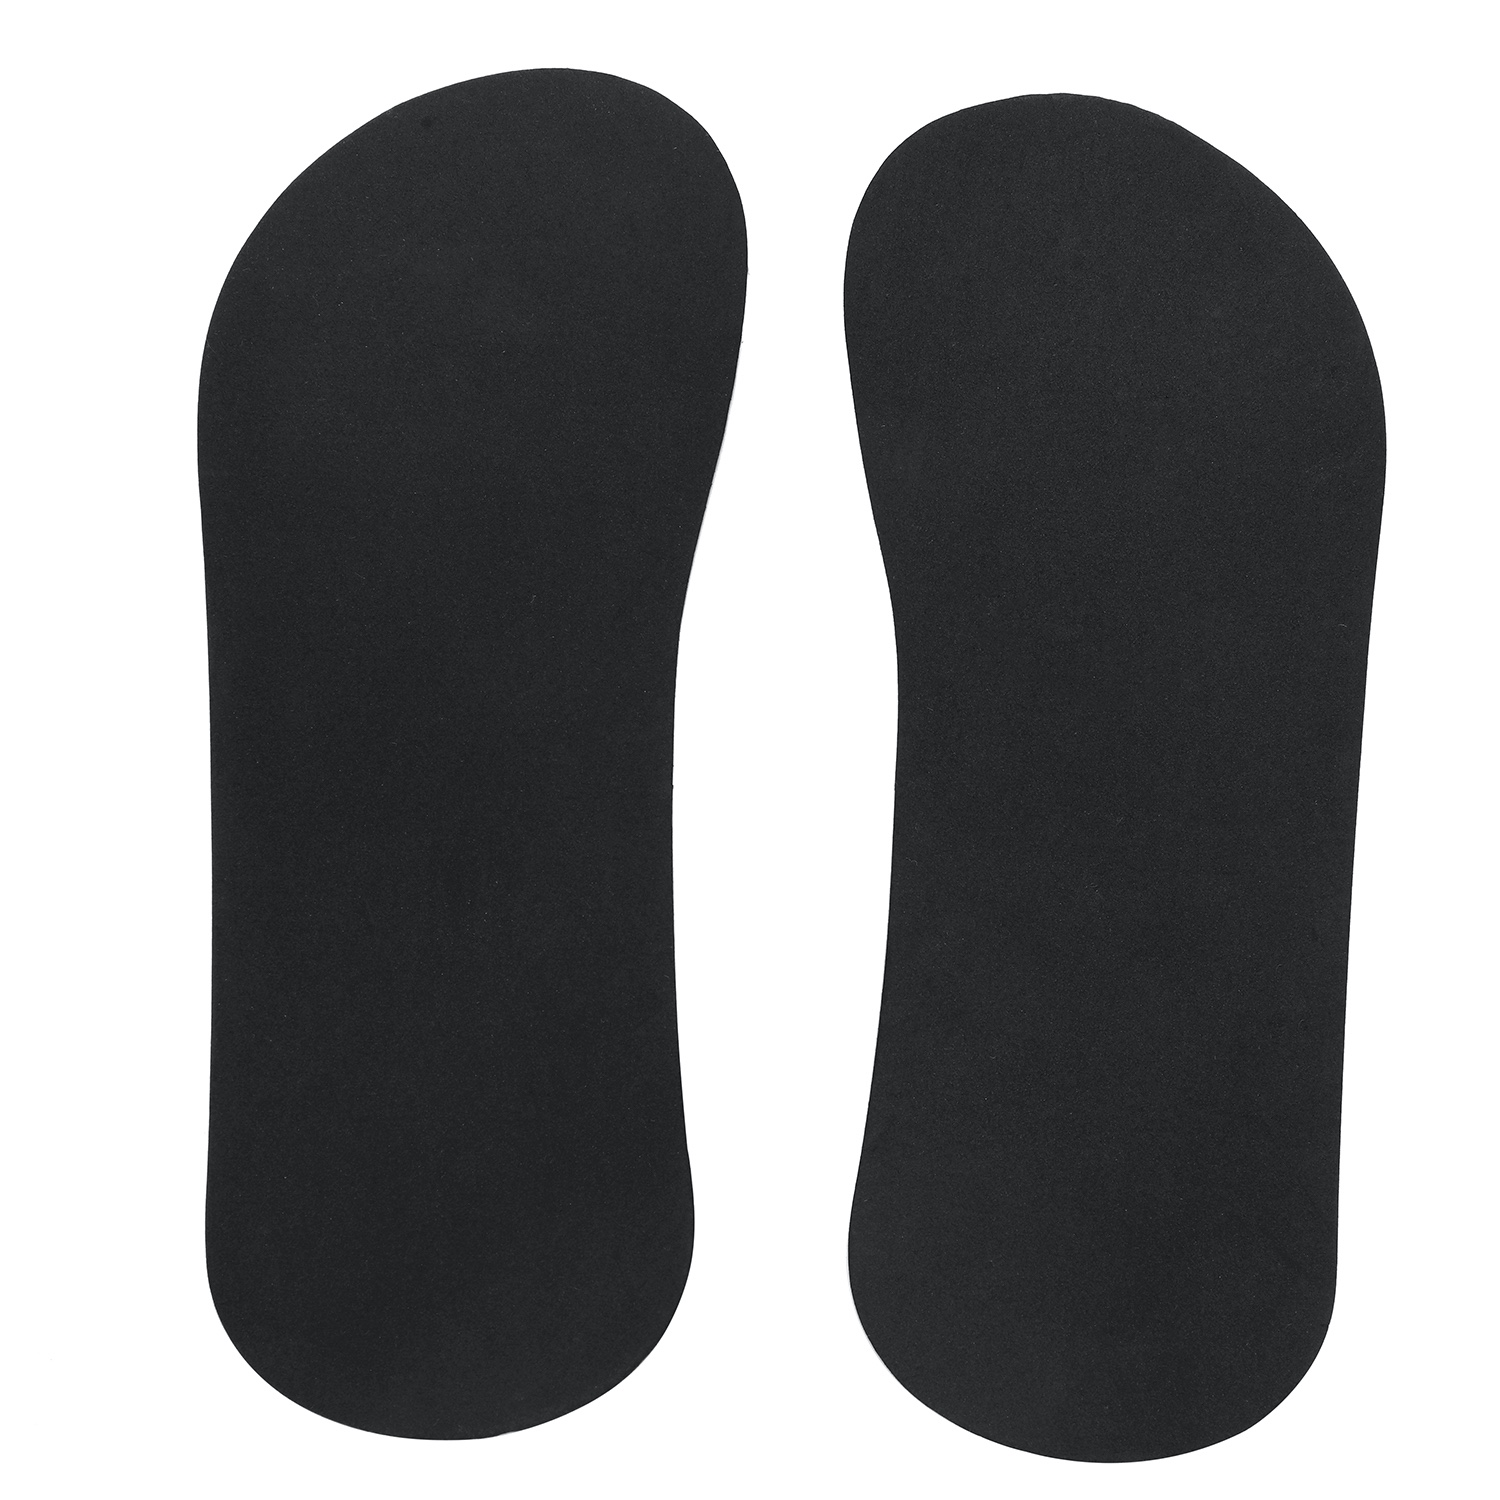 Black Colour EVA Foam Sticky Feet